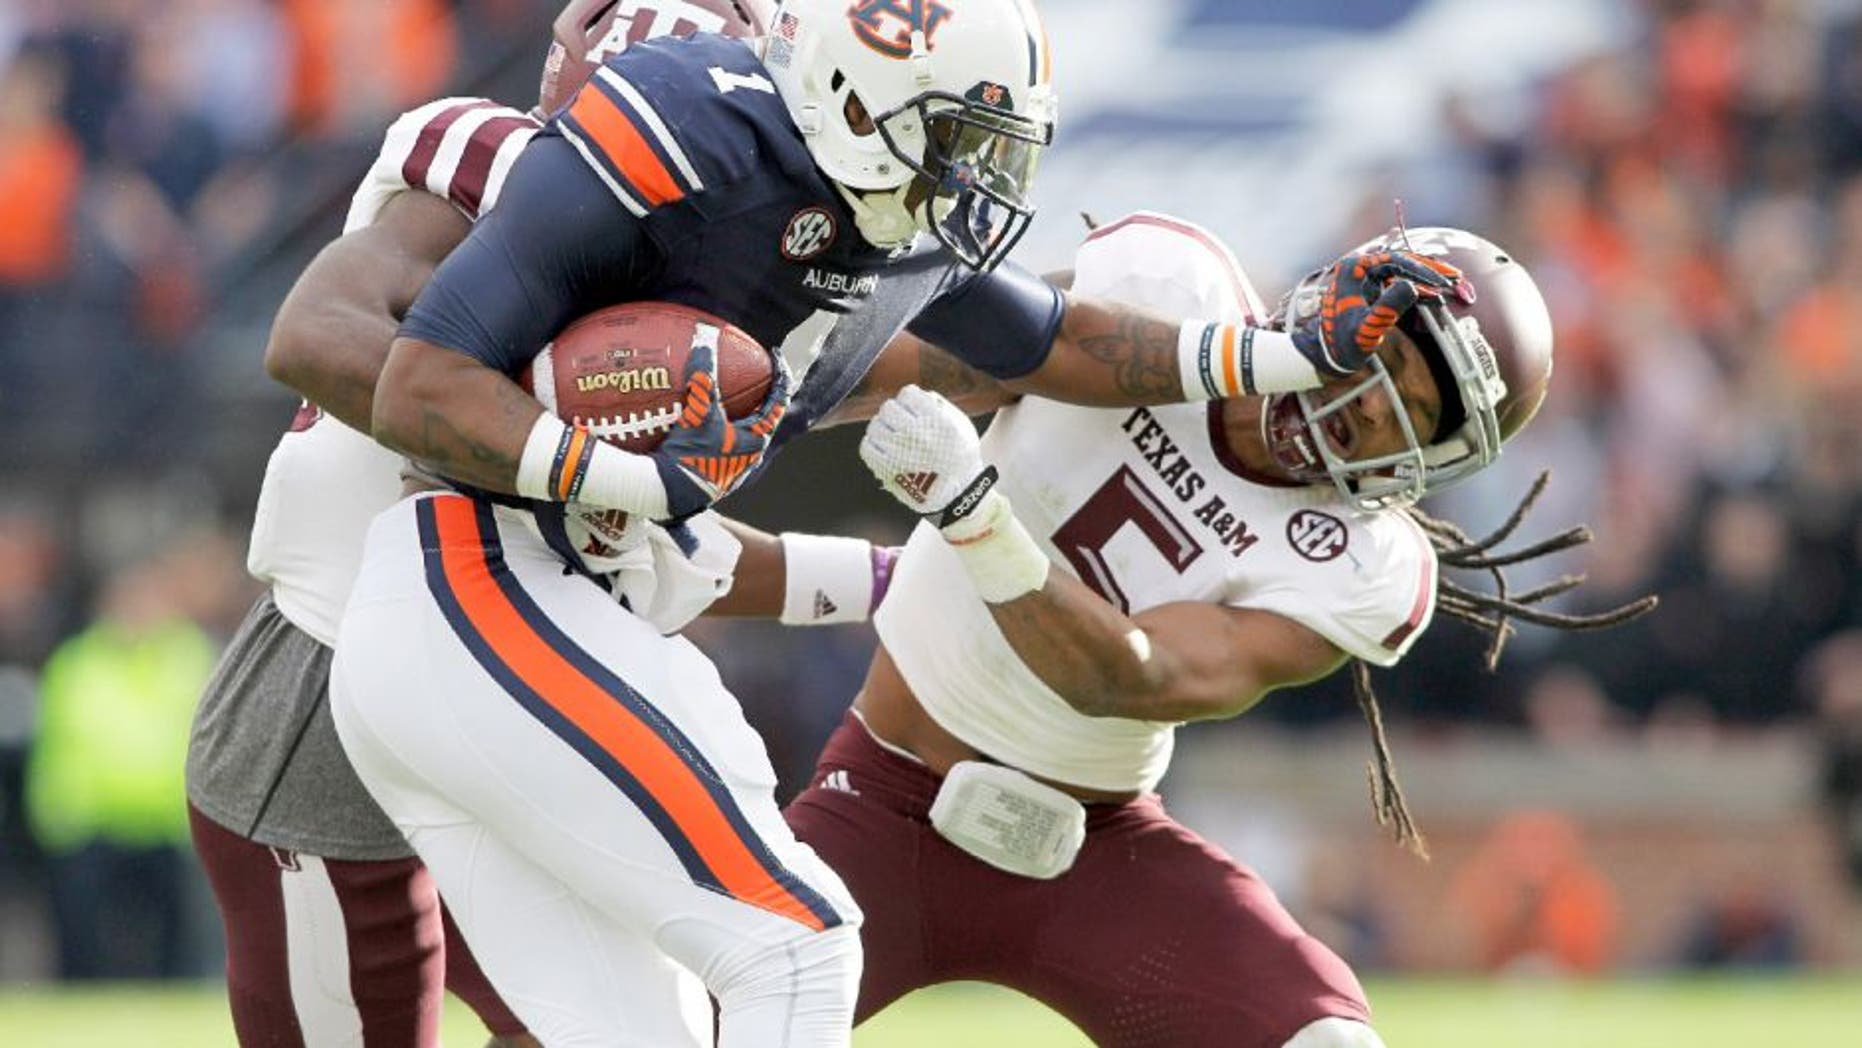 Nov 8, 2014; Auburn, AL, USA; Auburn Tigers receiver receiver D'haquille Williams (1) blocks Texas A&M Aggies defensive back Floyd Raven, Sr. (5) during the first half at Jordan Hare Stadium. Mandatory Credit: John Reed-USA TODAY Sports